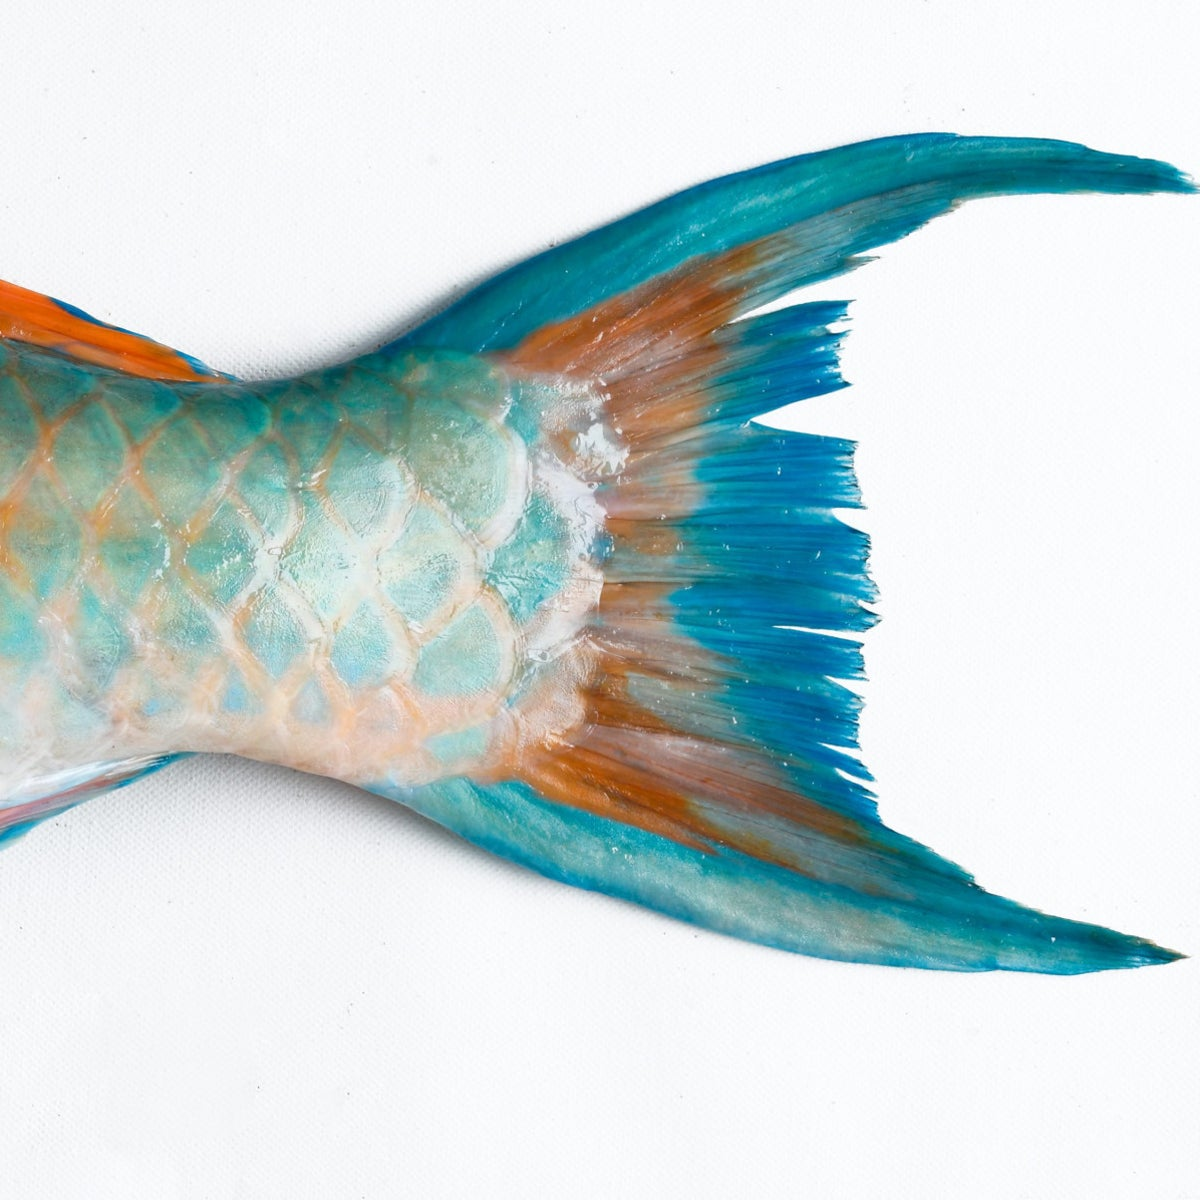 The tail of a parrotfish.